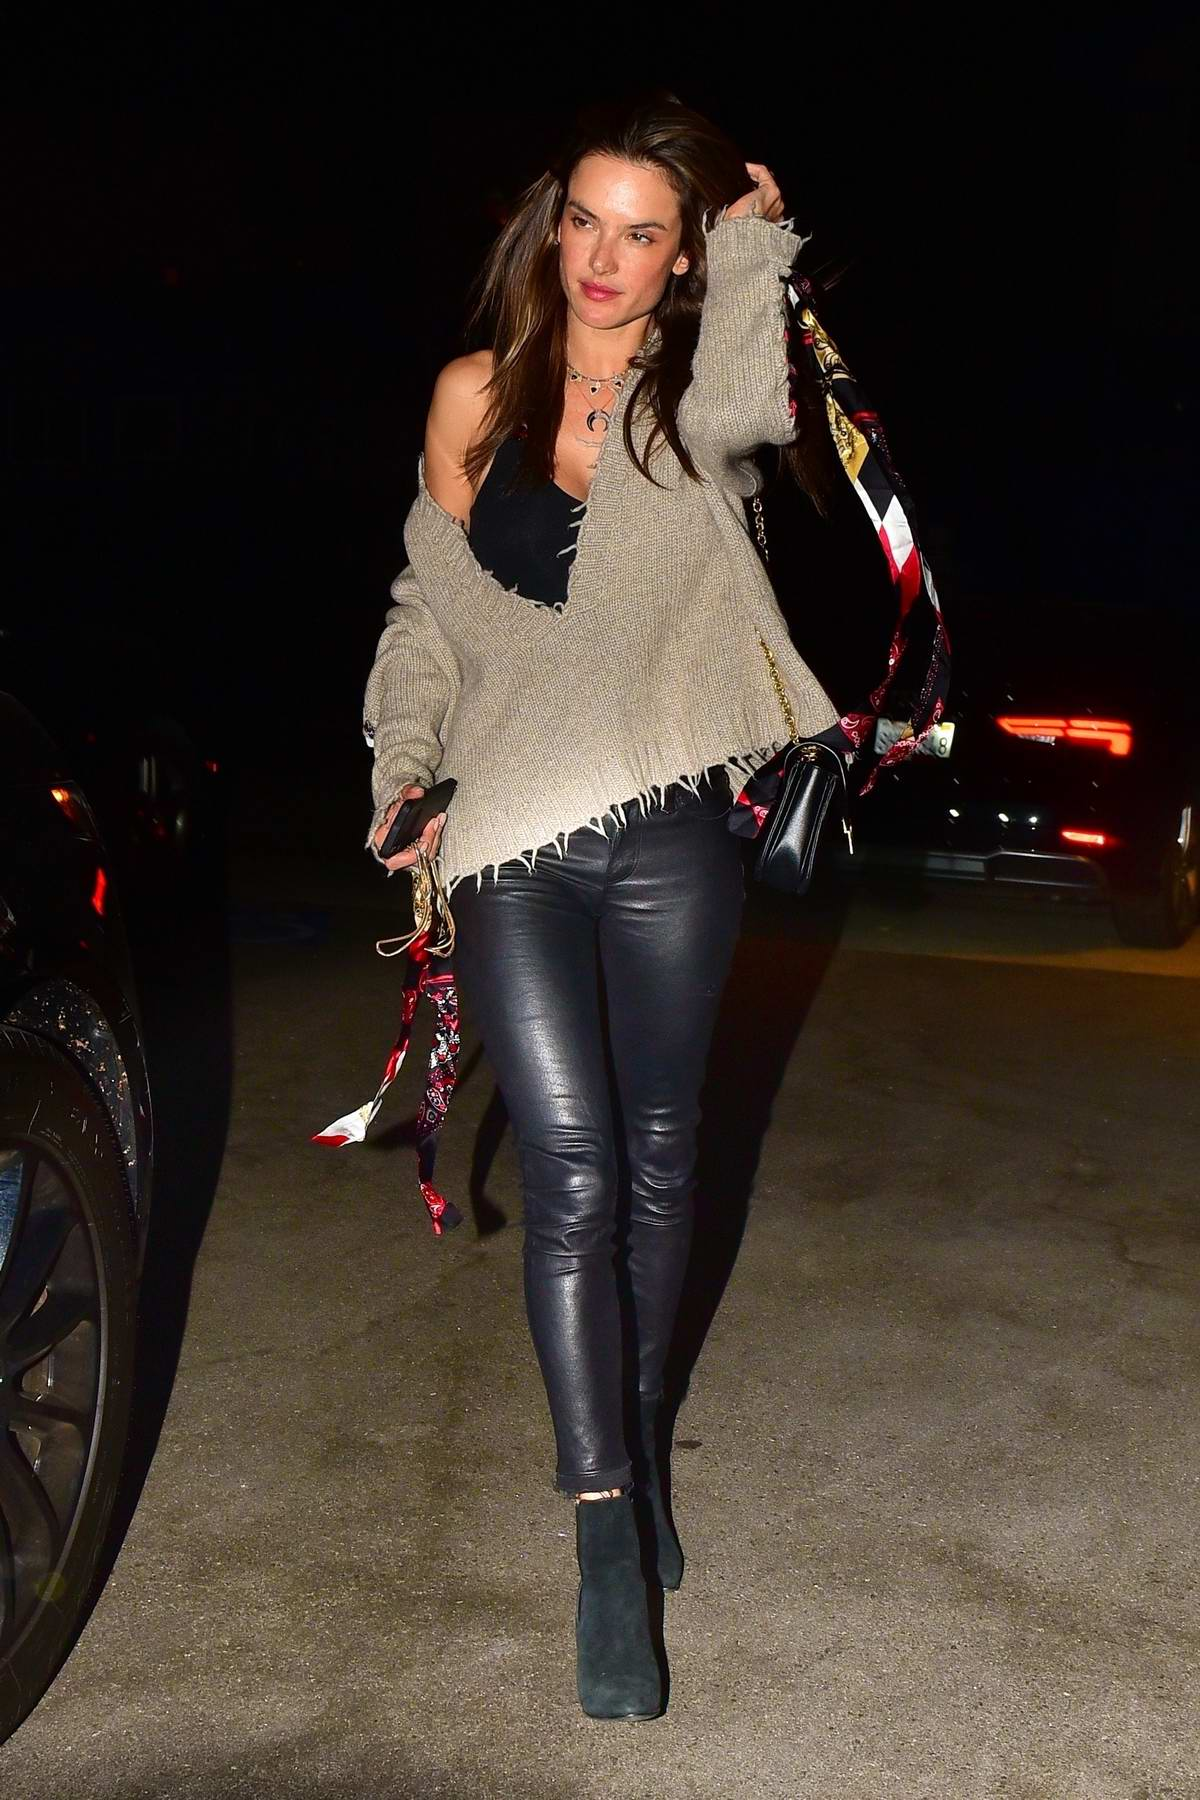 Alessandra Ambrosio looks stylish in black leather pants during a dinner date with Nicolo Oddi in Santa Monica, California